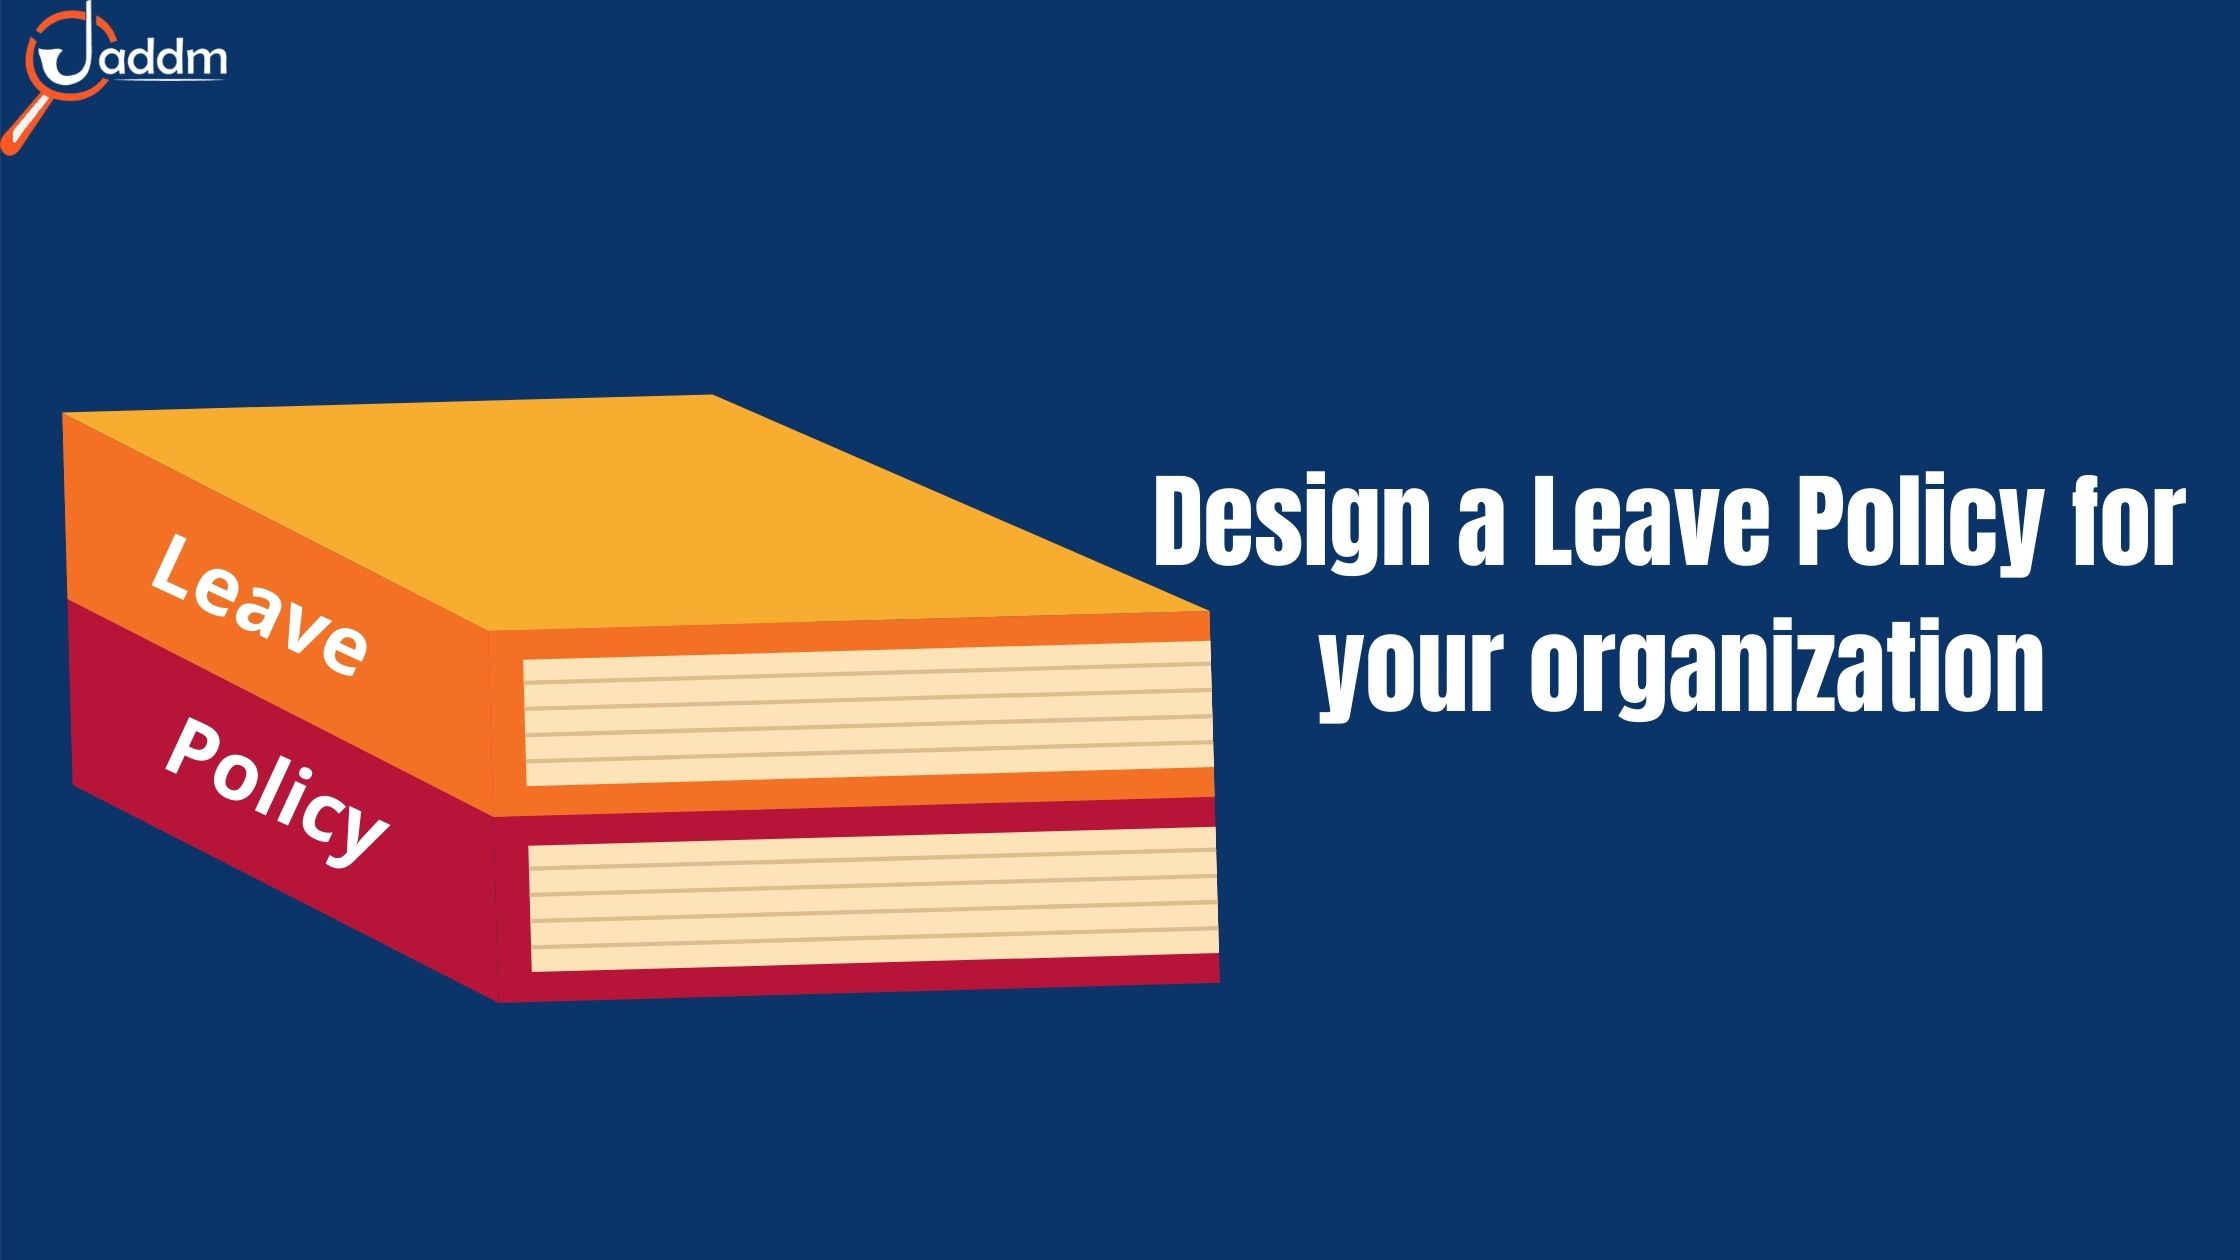 How to Design a Leave Policy for your organization?